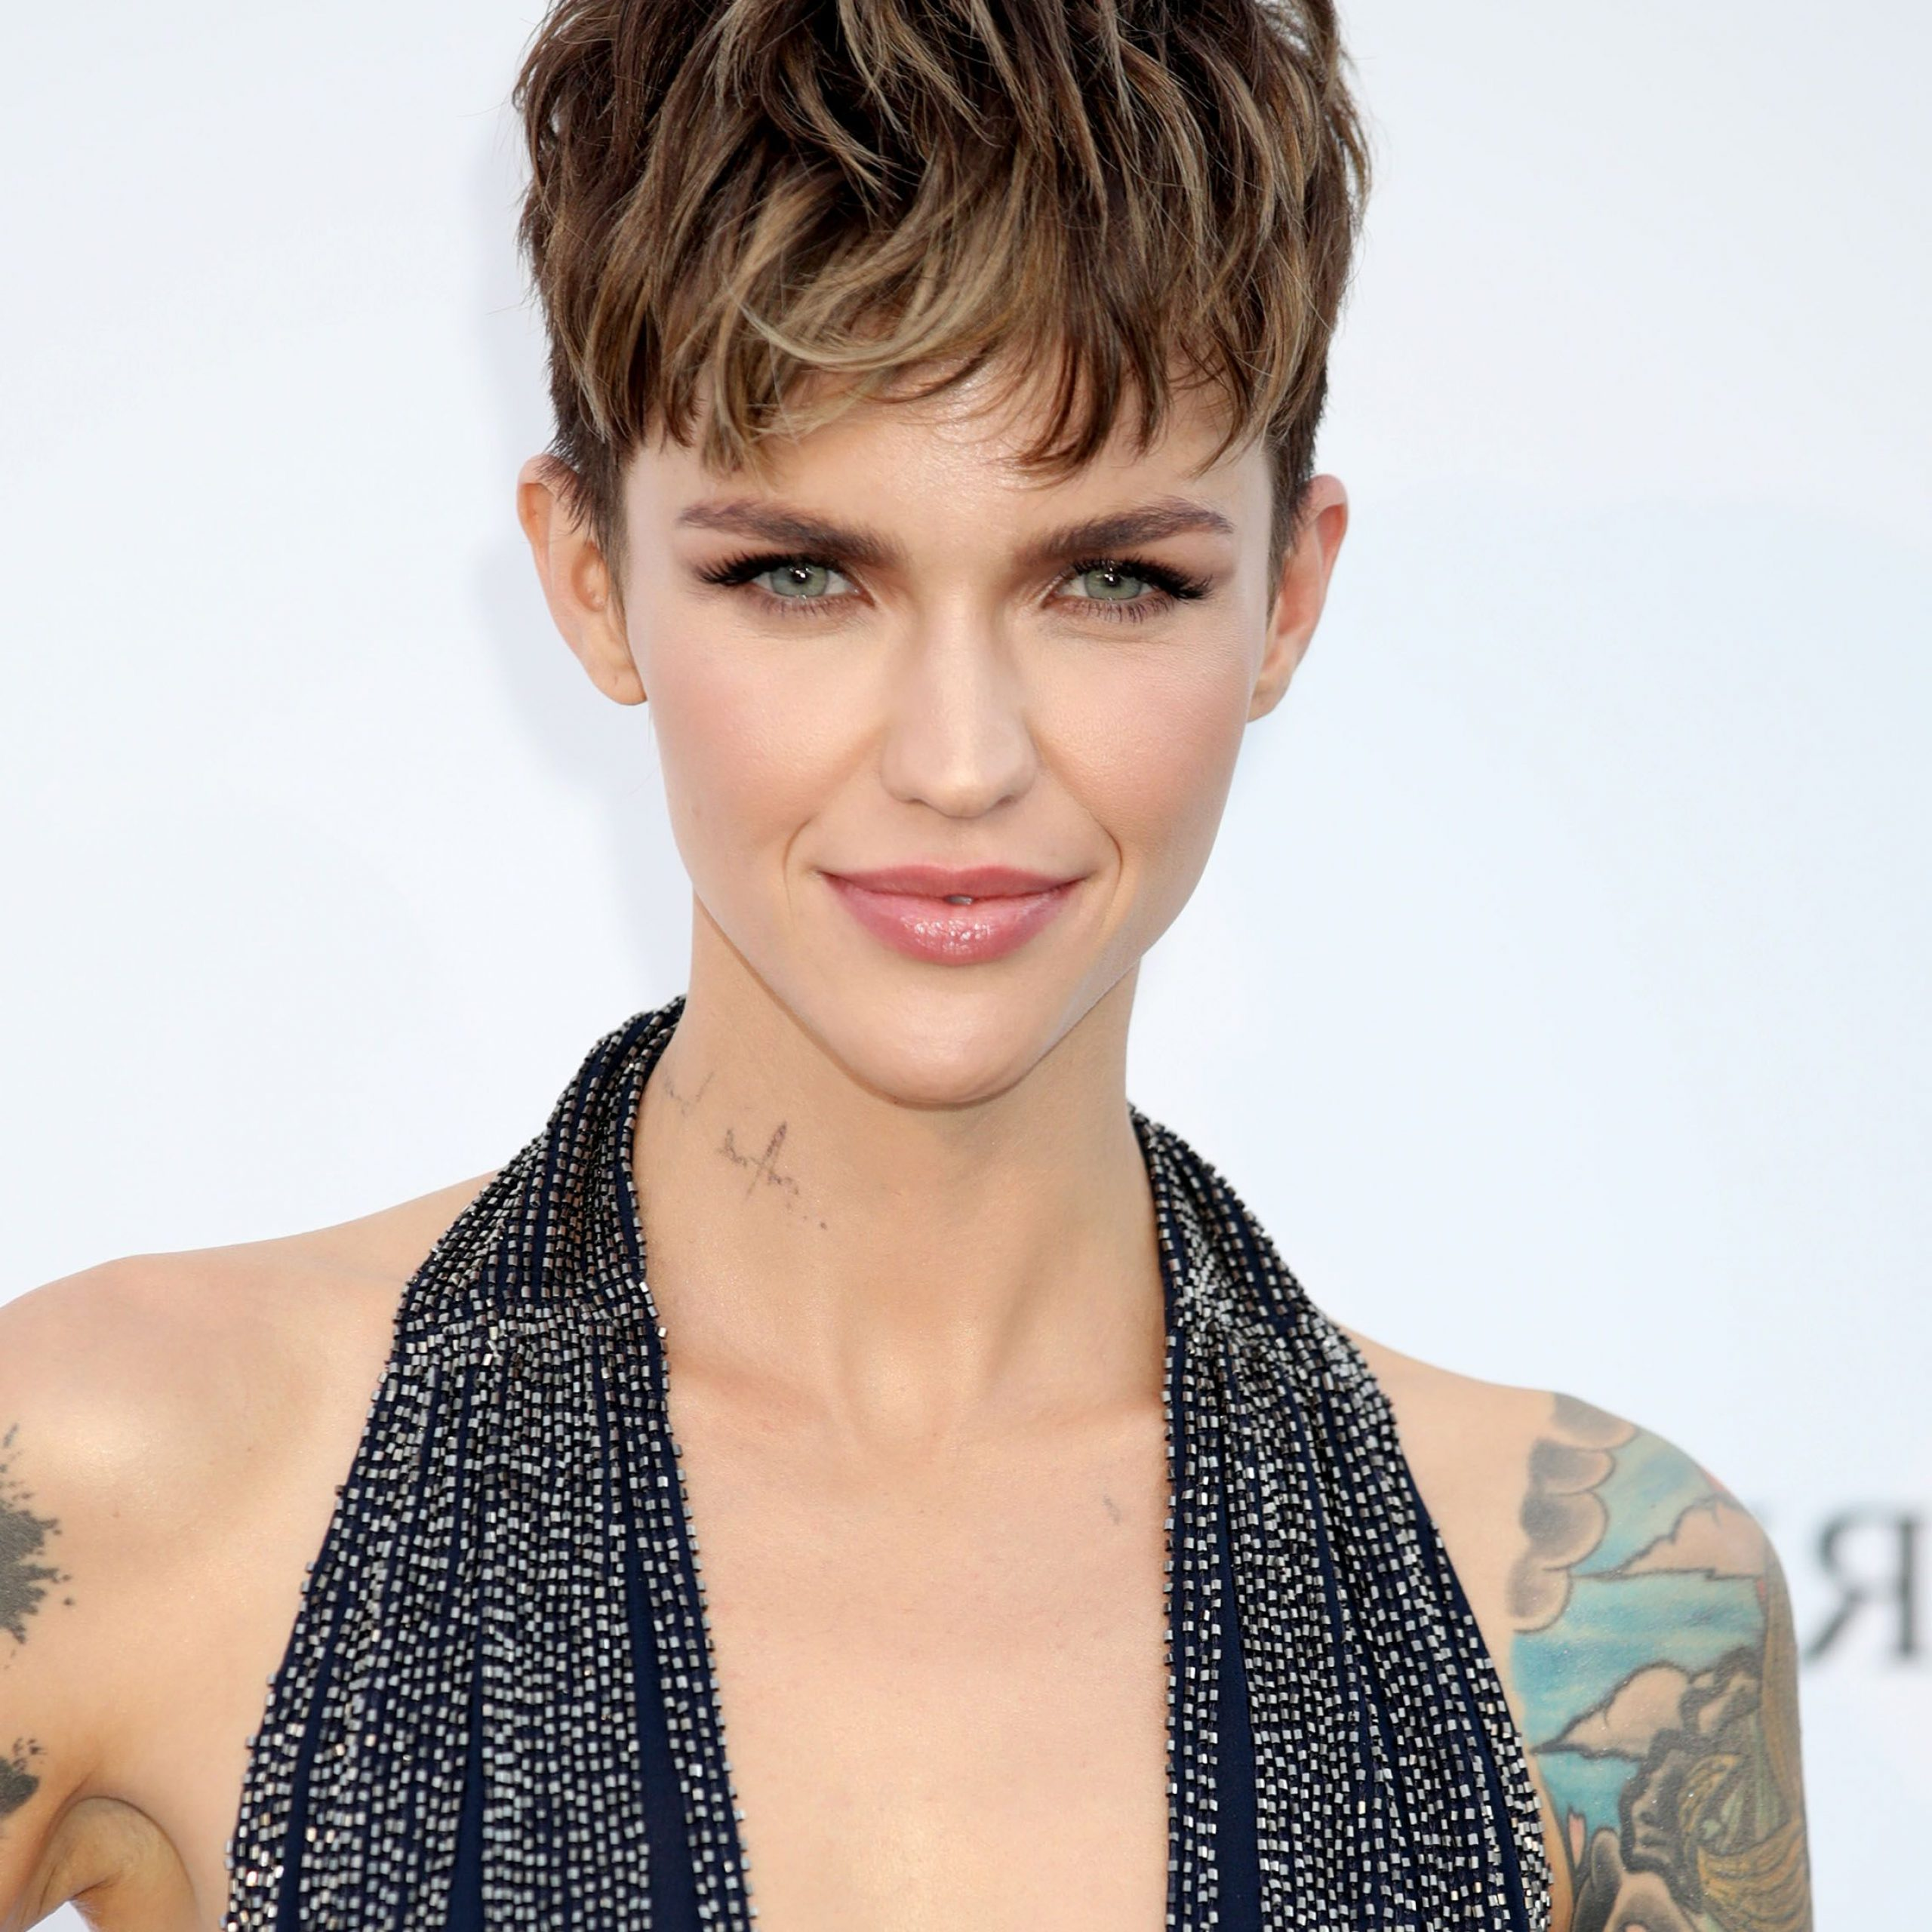 Fashionable Edgy Look Pixie Haircuts With Sass Throughout 91 Best Pixie Cut Hairstyle Ideas 2020 – Cute Celebrity (View 8 of 20)